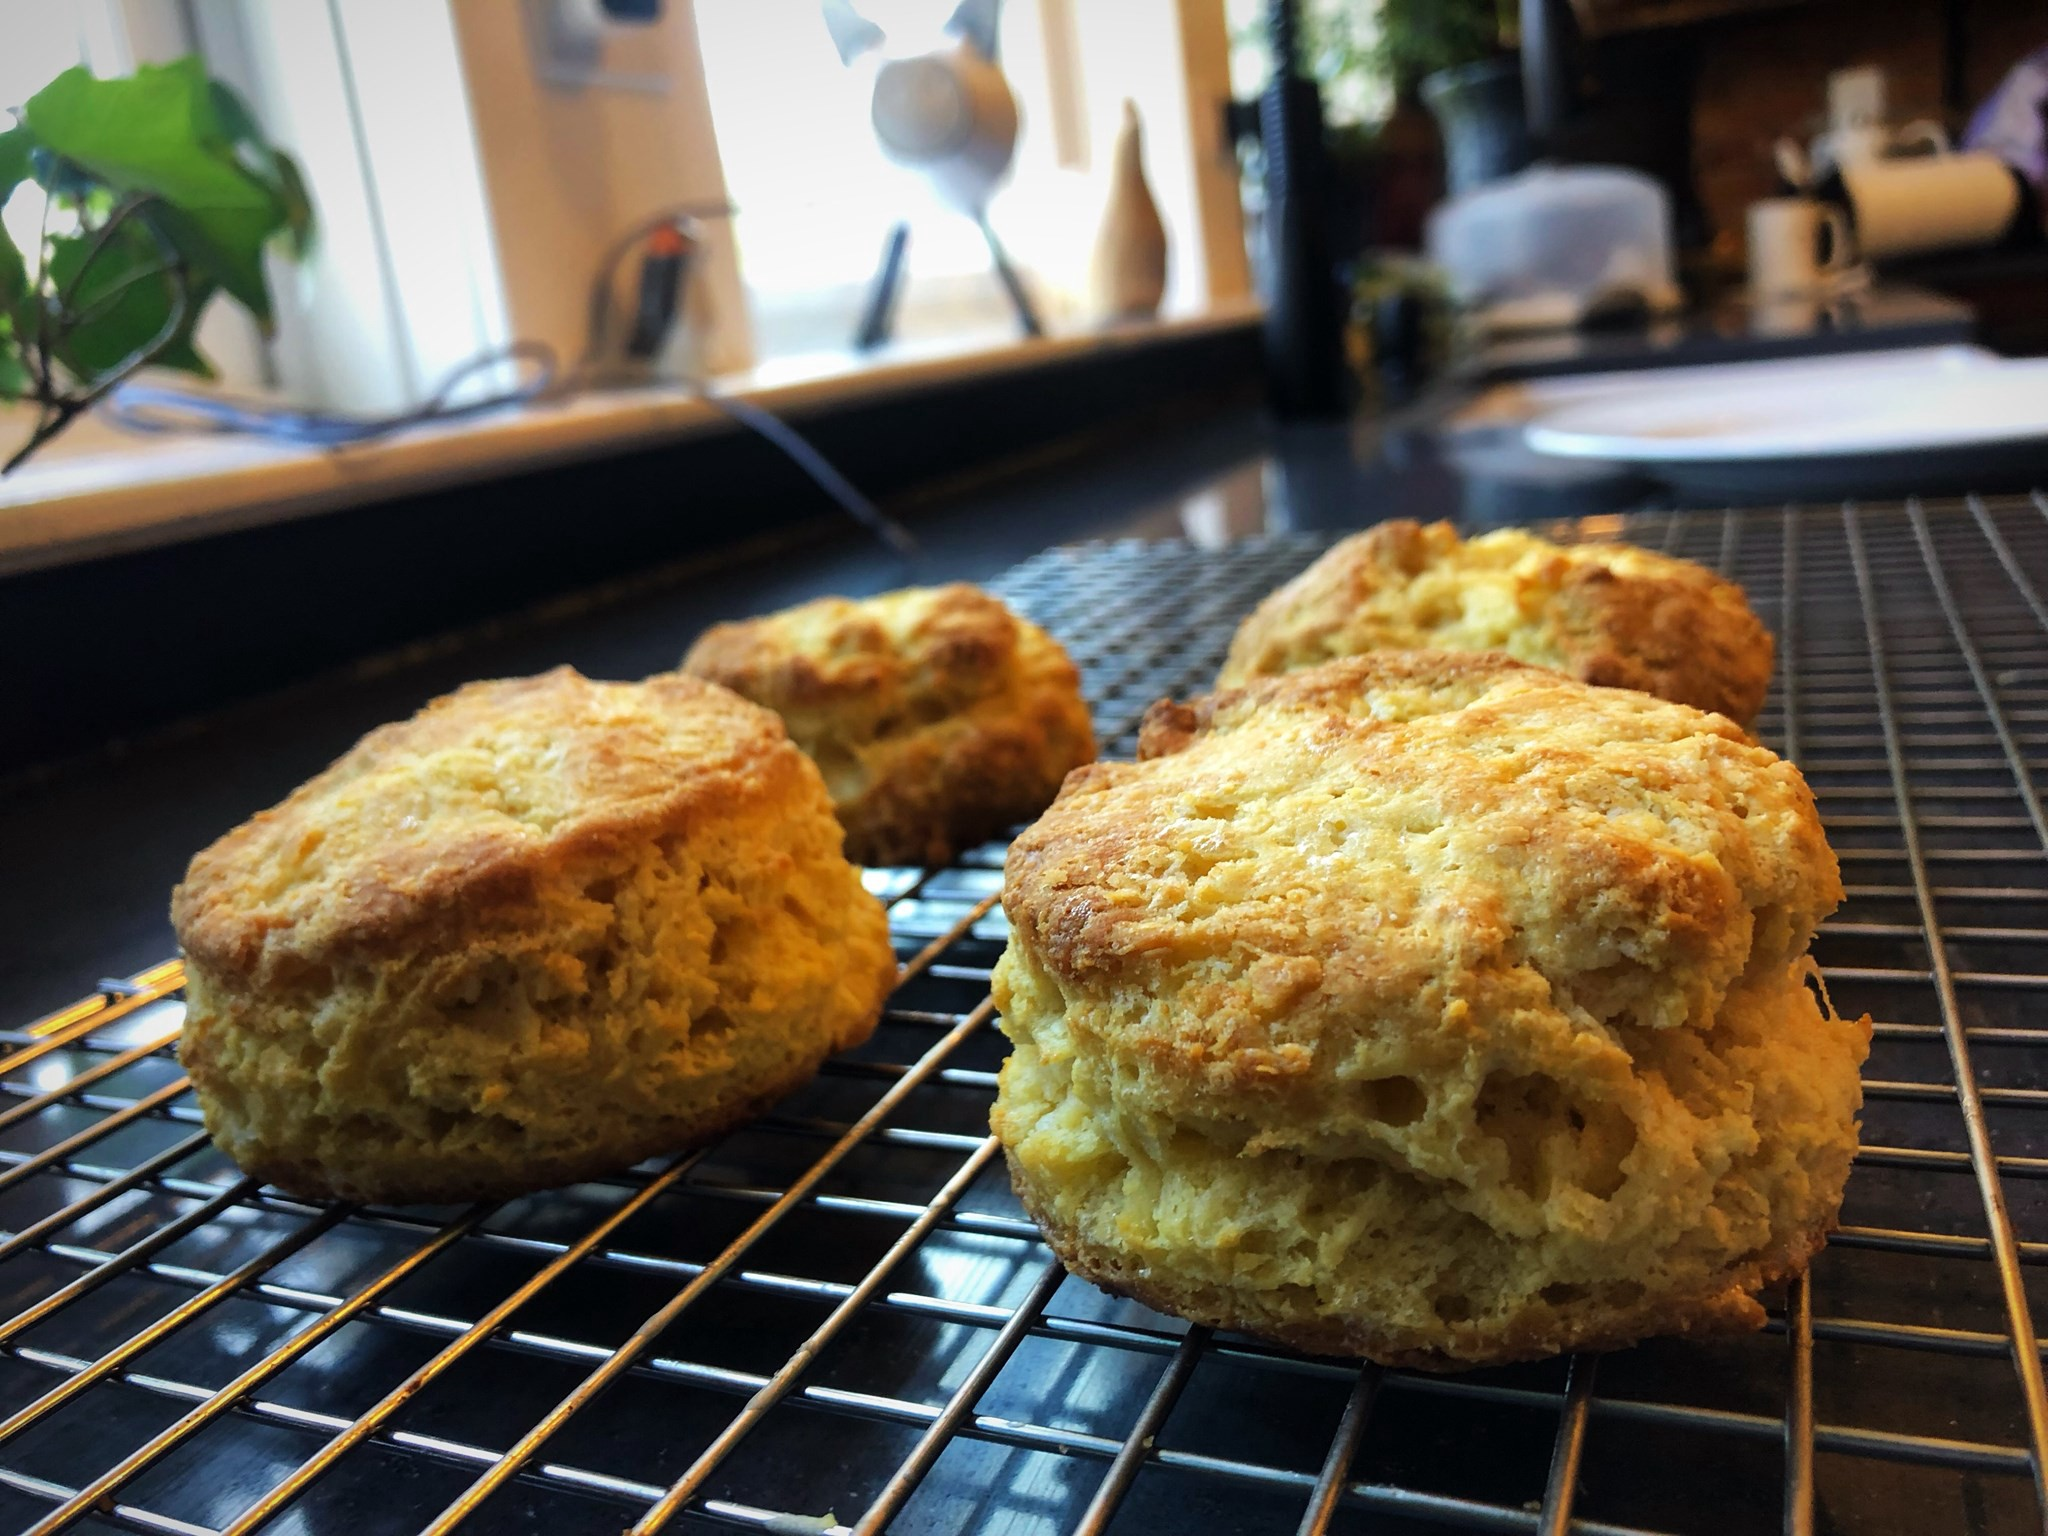 Four delicious biscuits cool on a wire rack in the morning sunlight